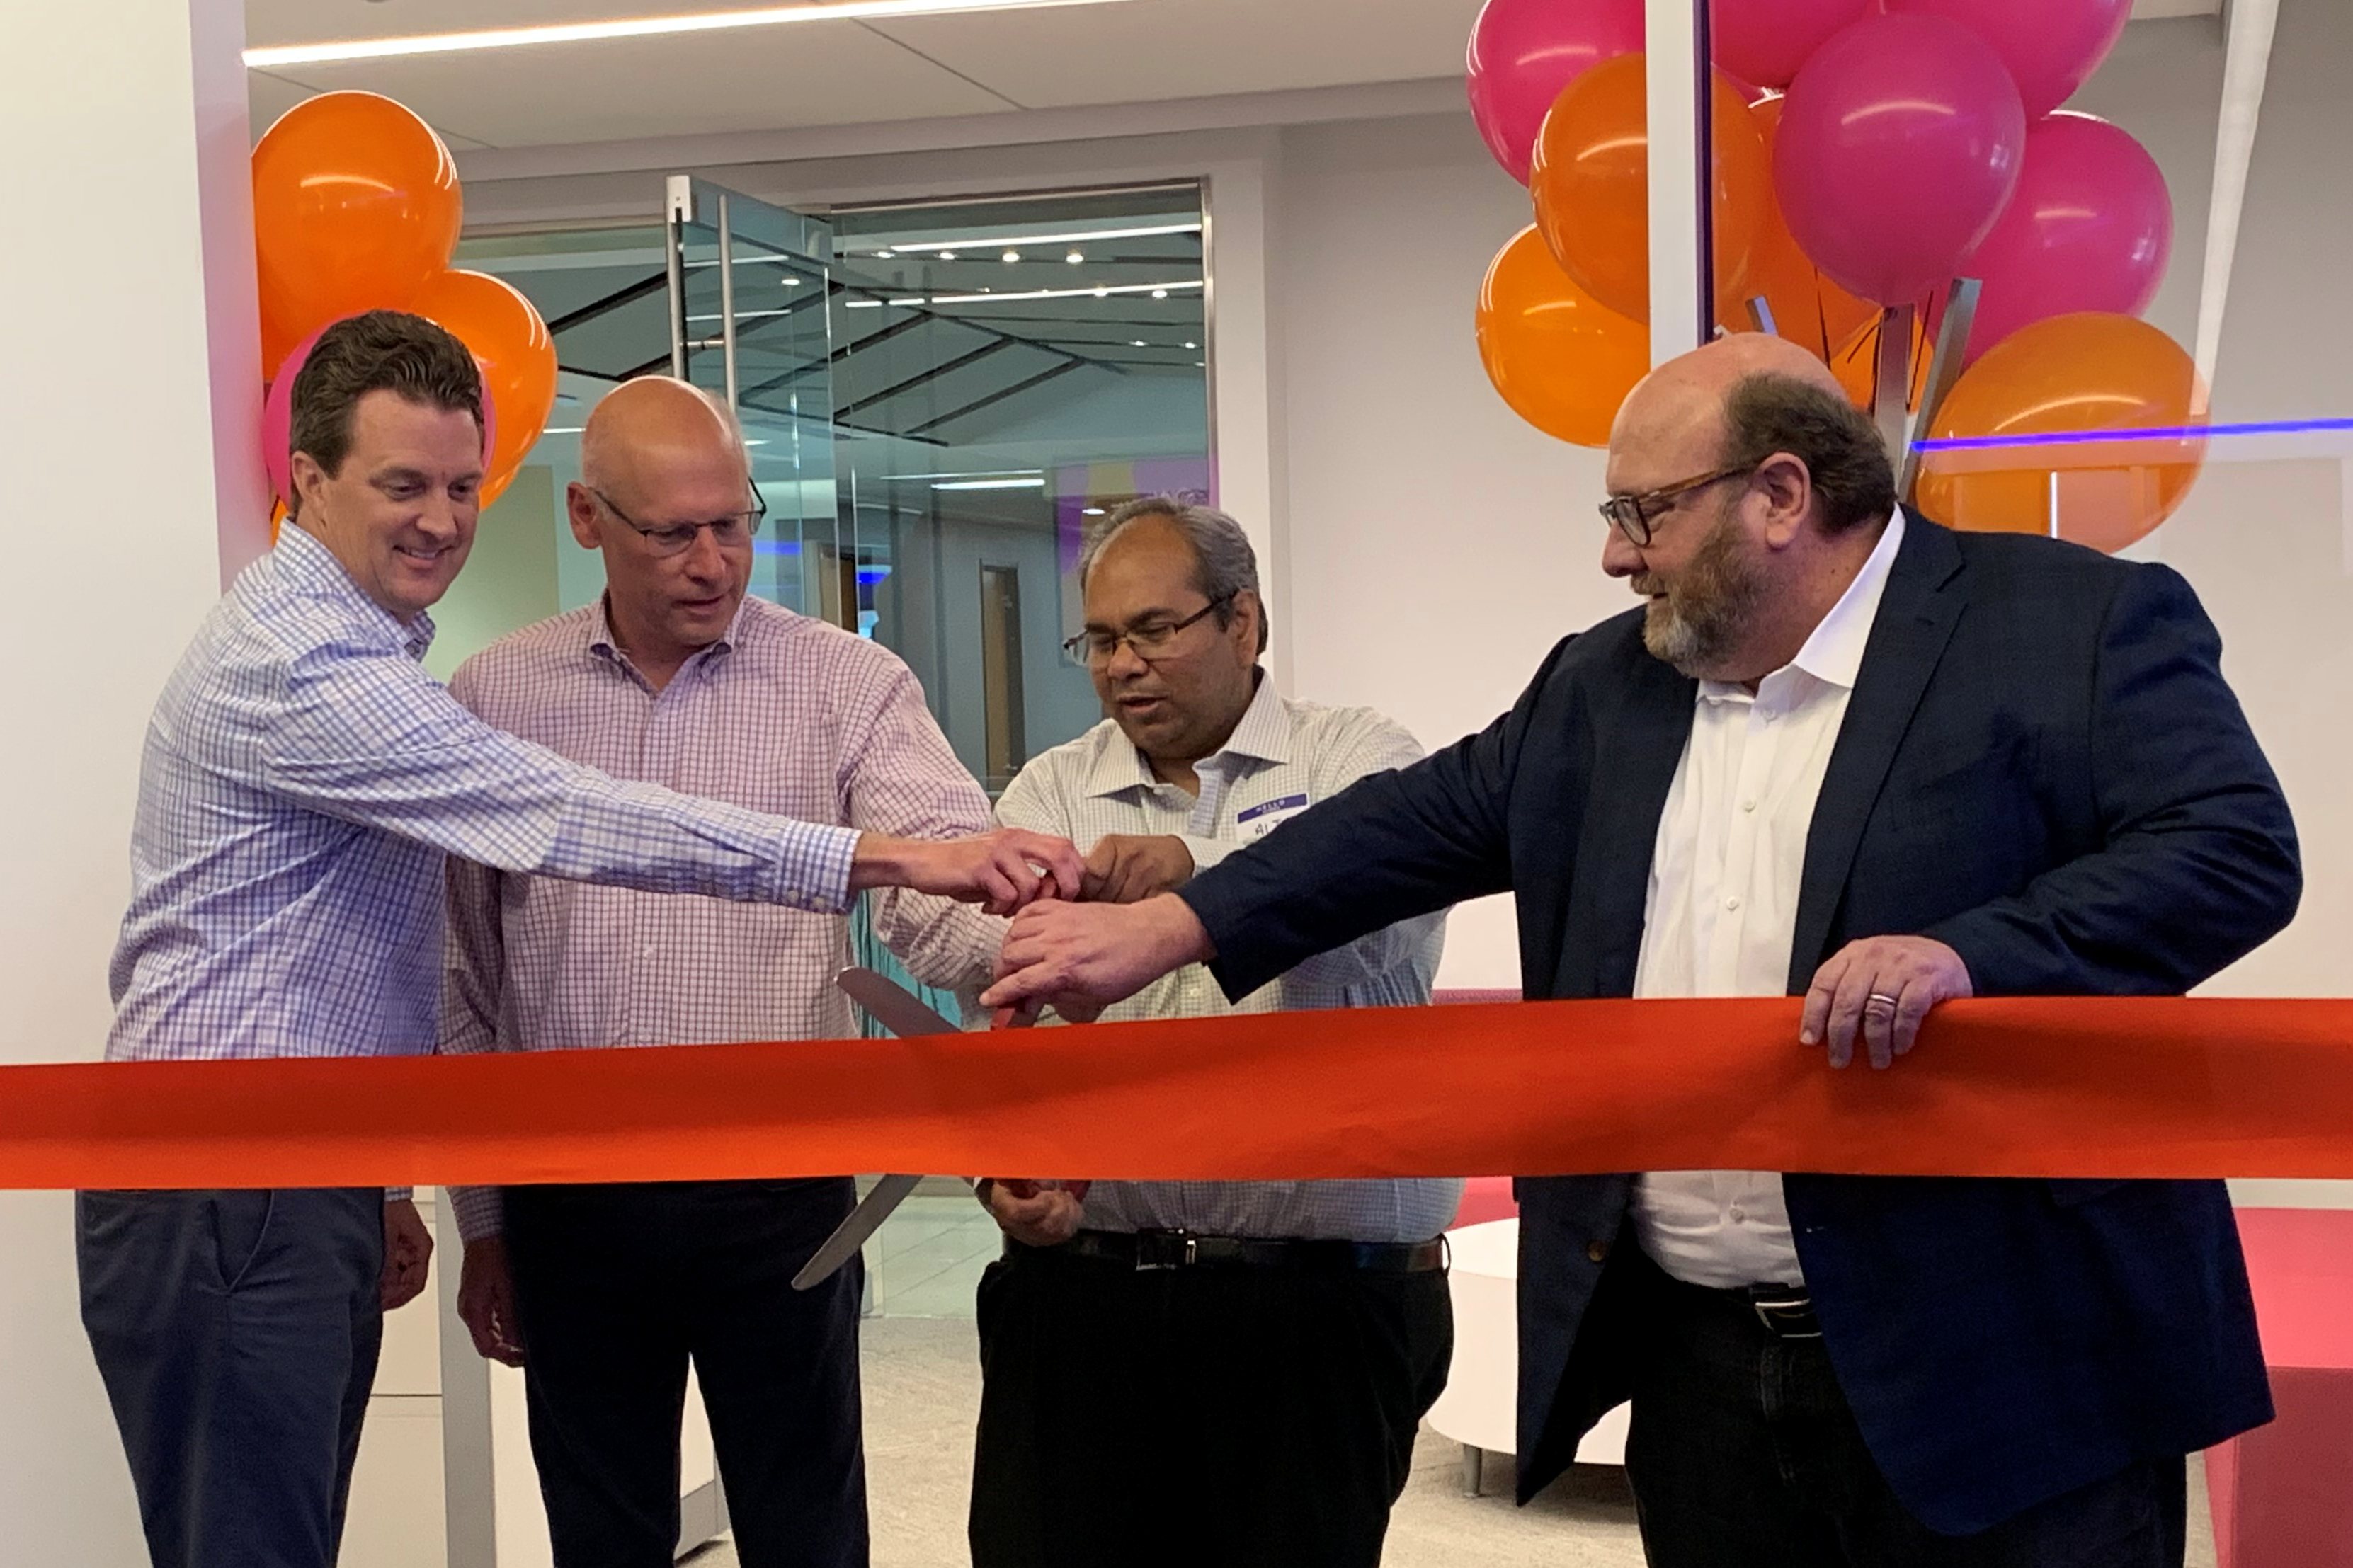 Glennis Opens the Doors to its New Office